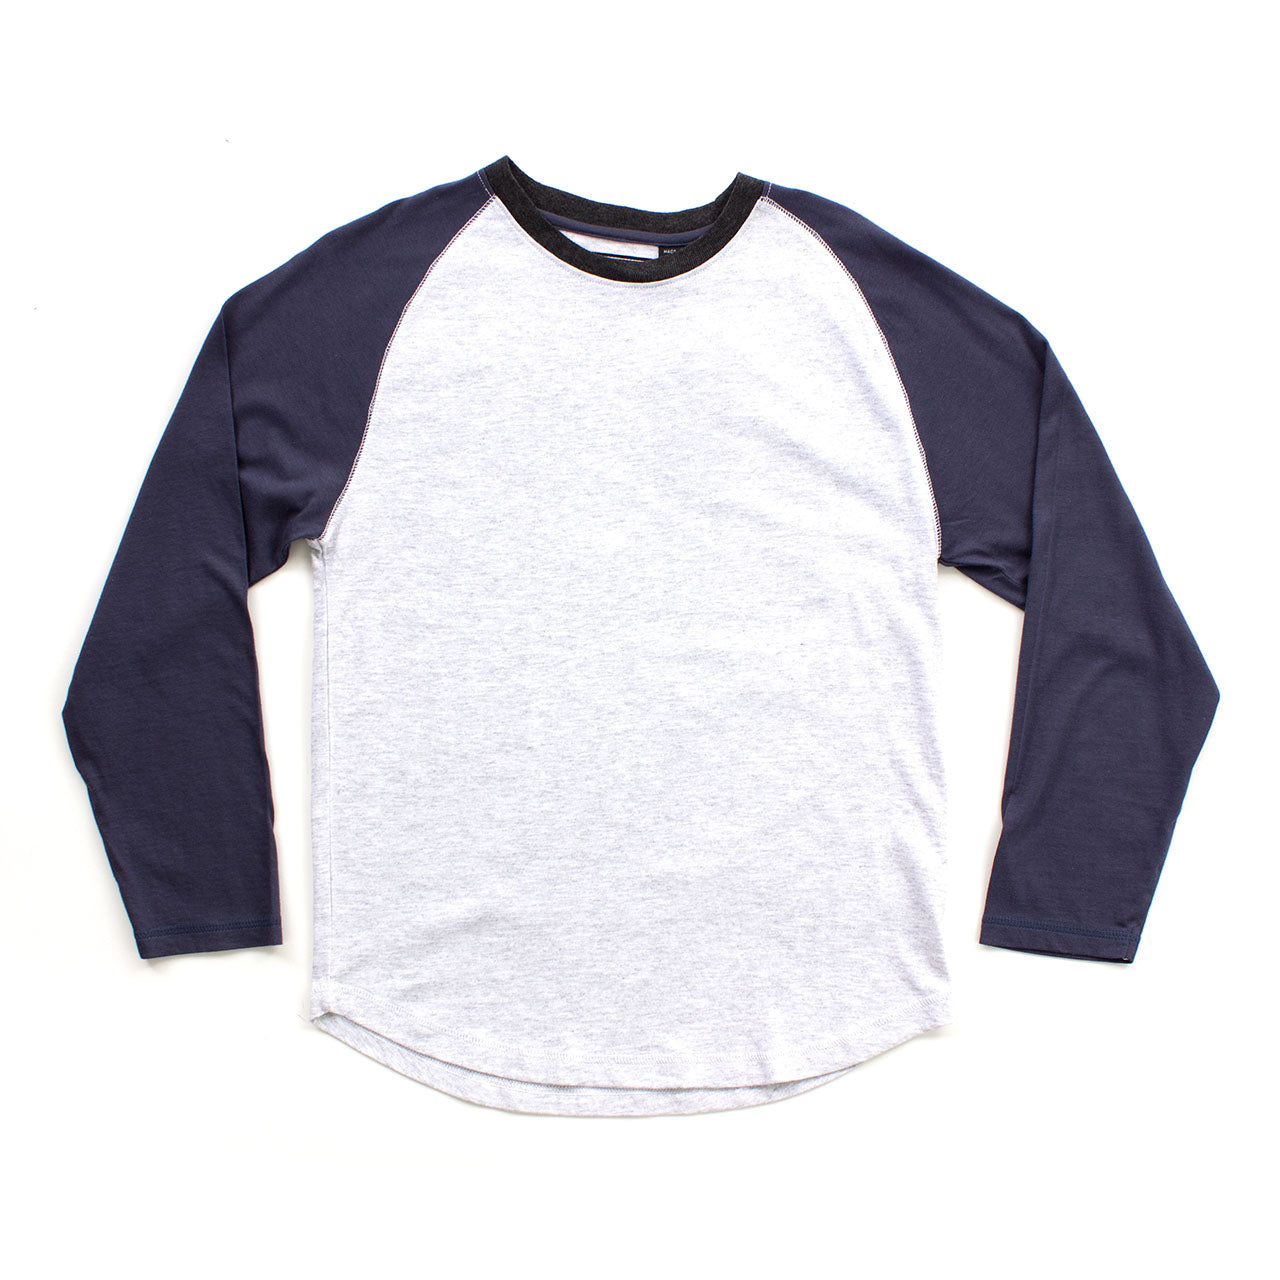 Jaylen Raglan Long Sleeve Tee Boys